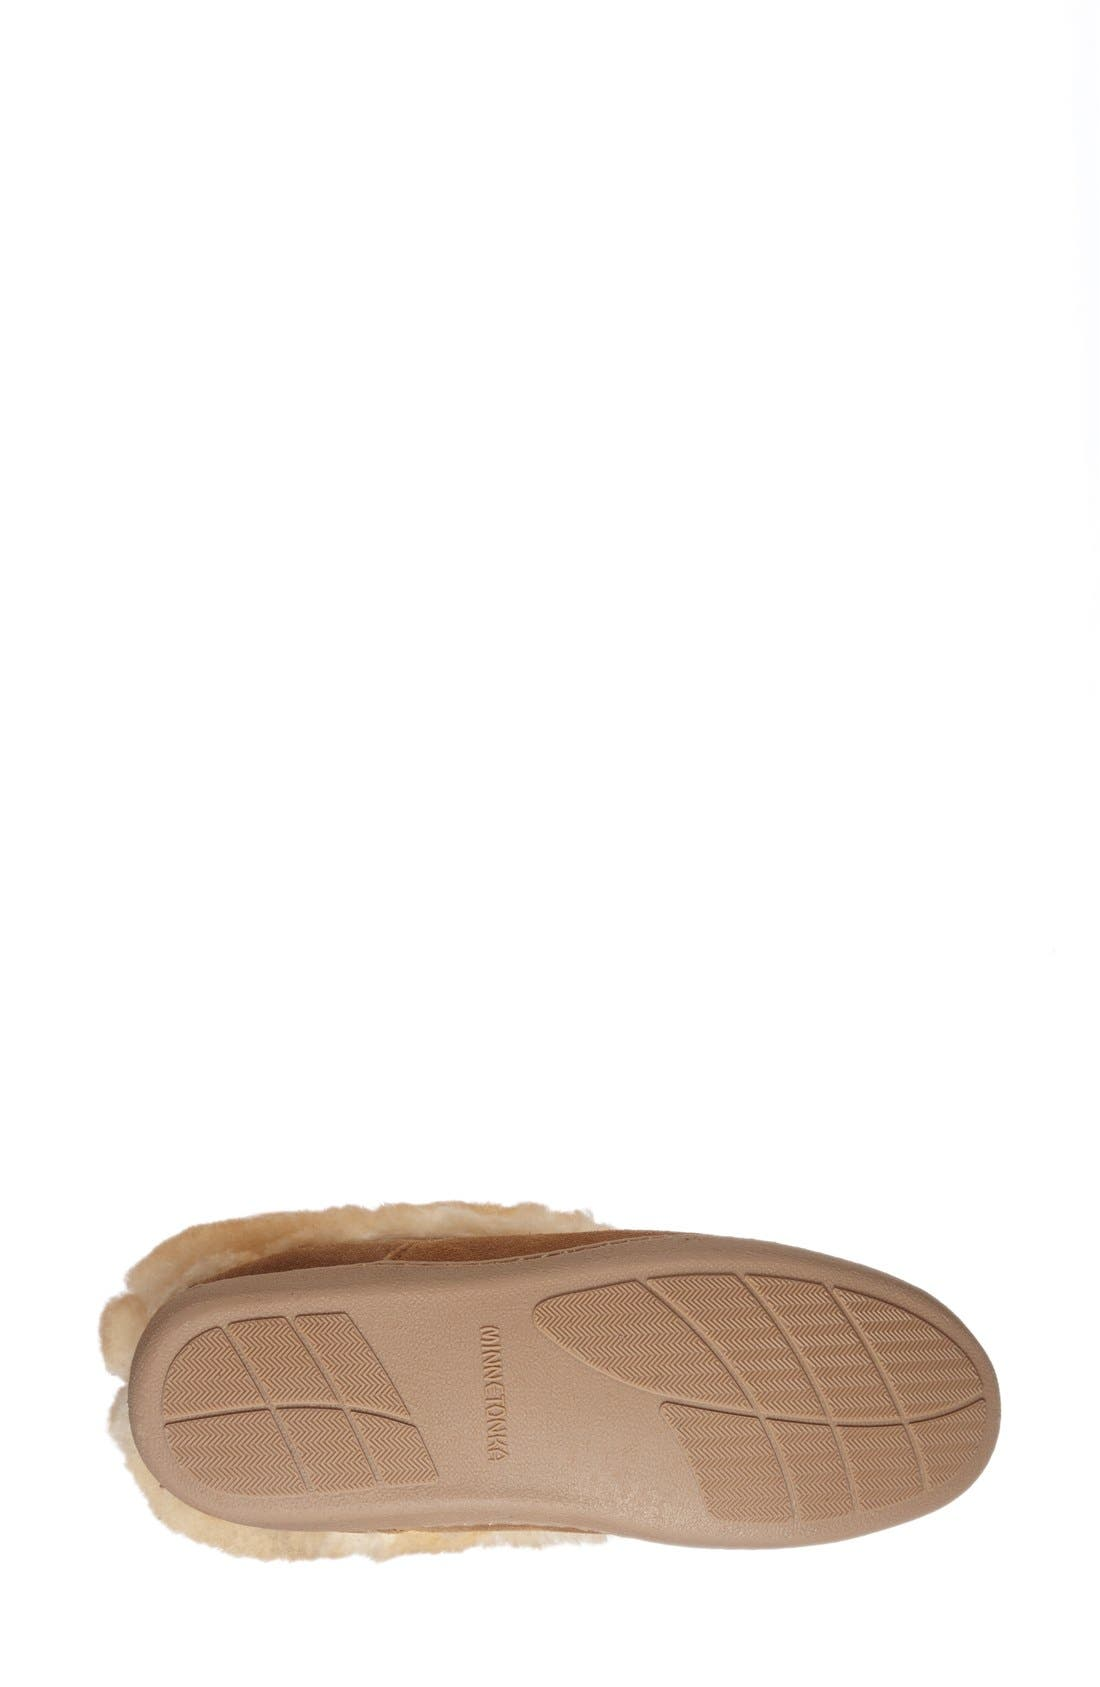 Sheepskin Slipper Bootie,                             Alternate thumbnail 4, color,                             Tan Suede